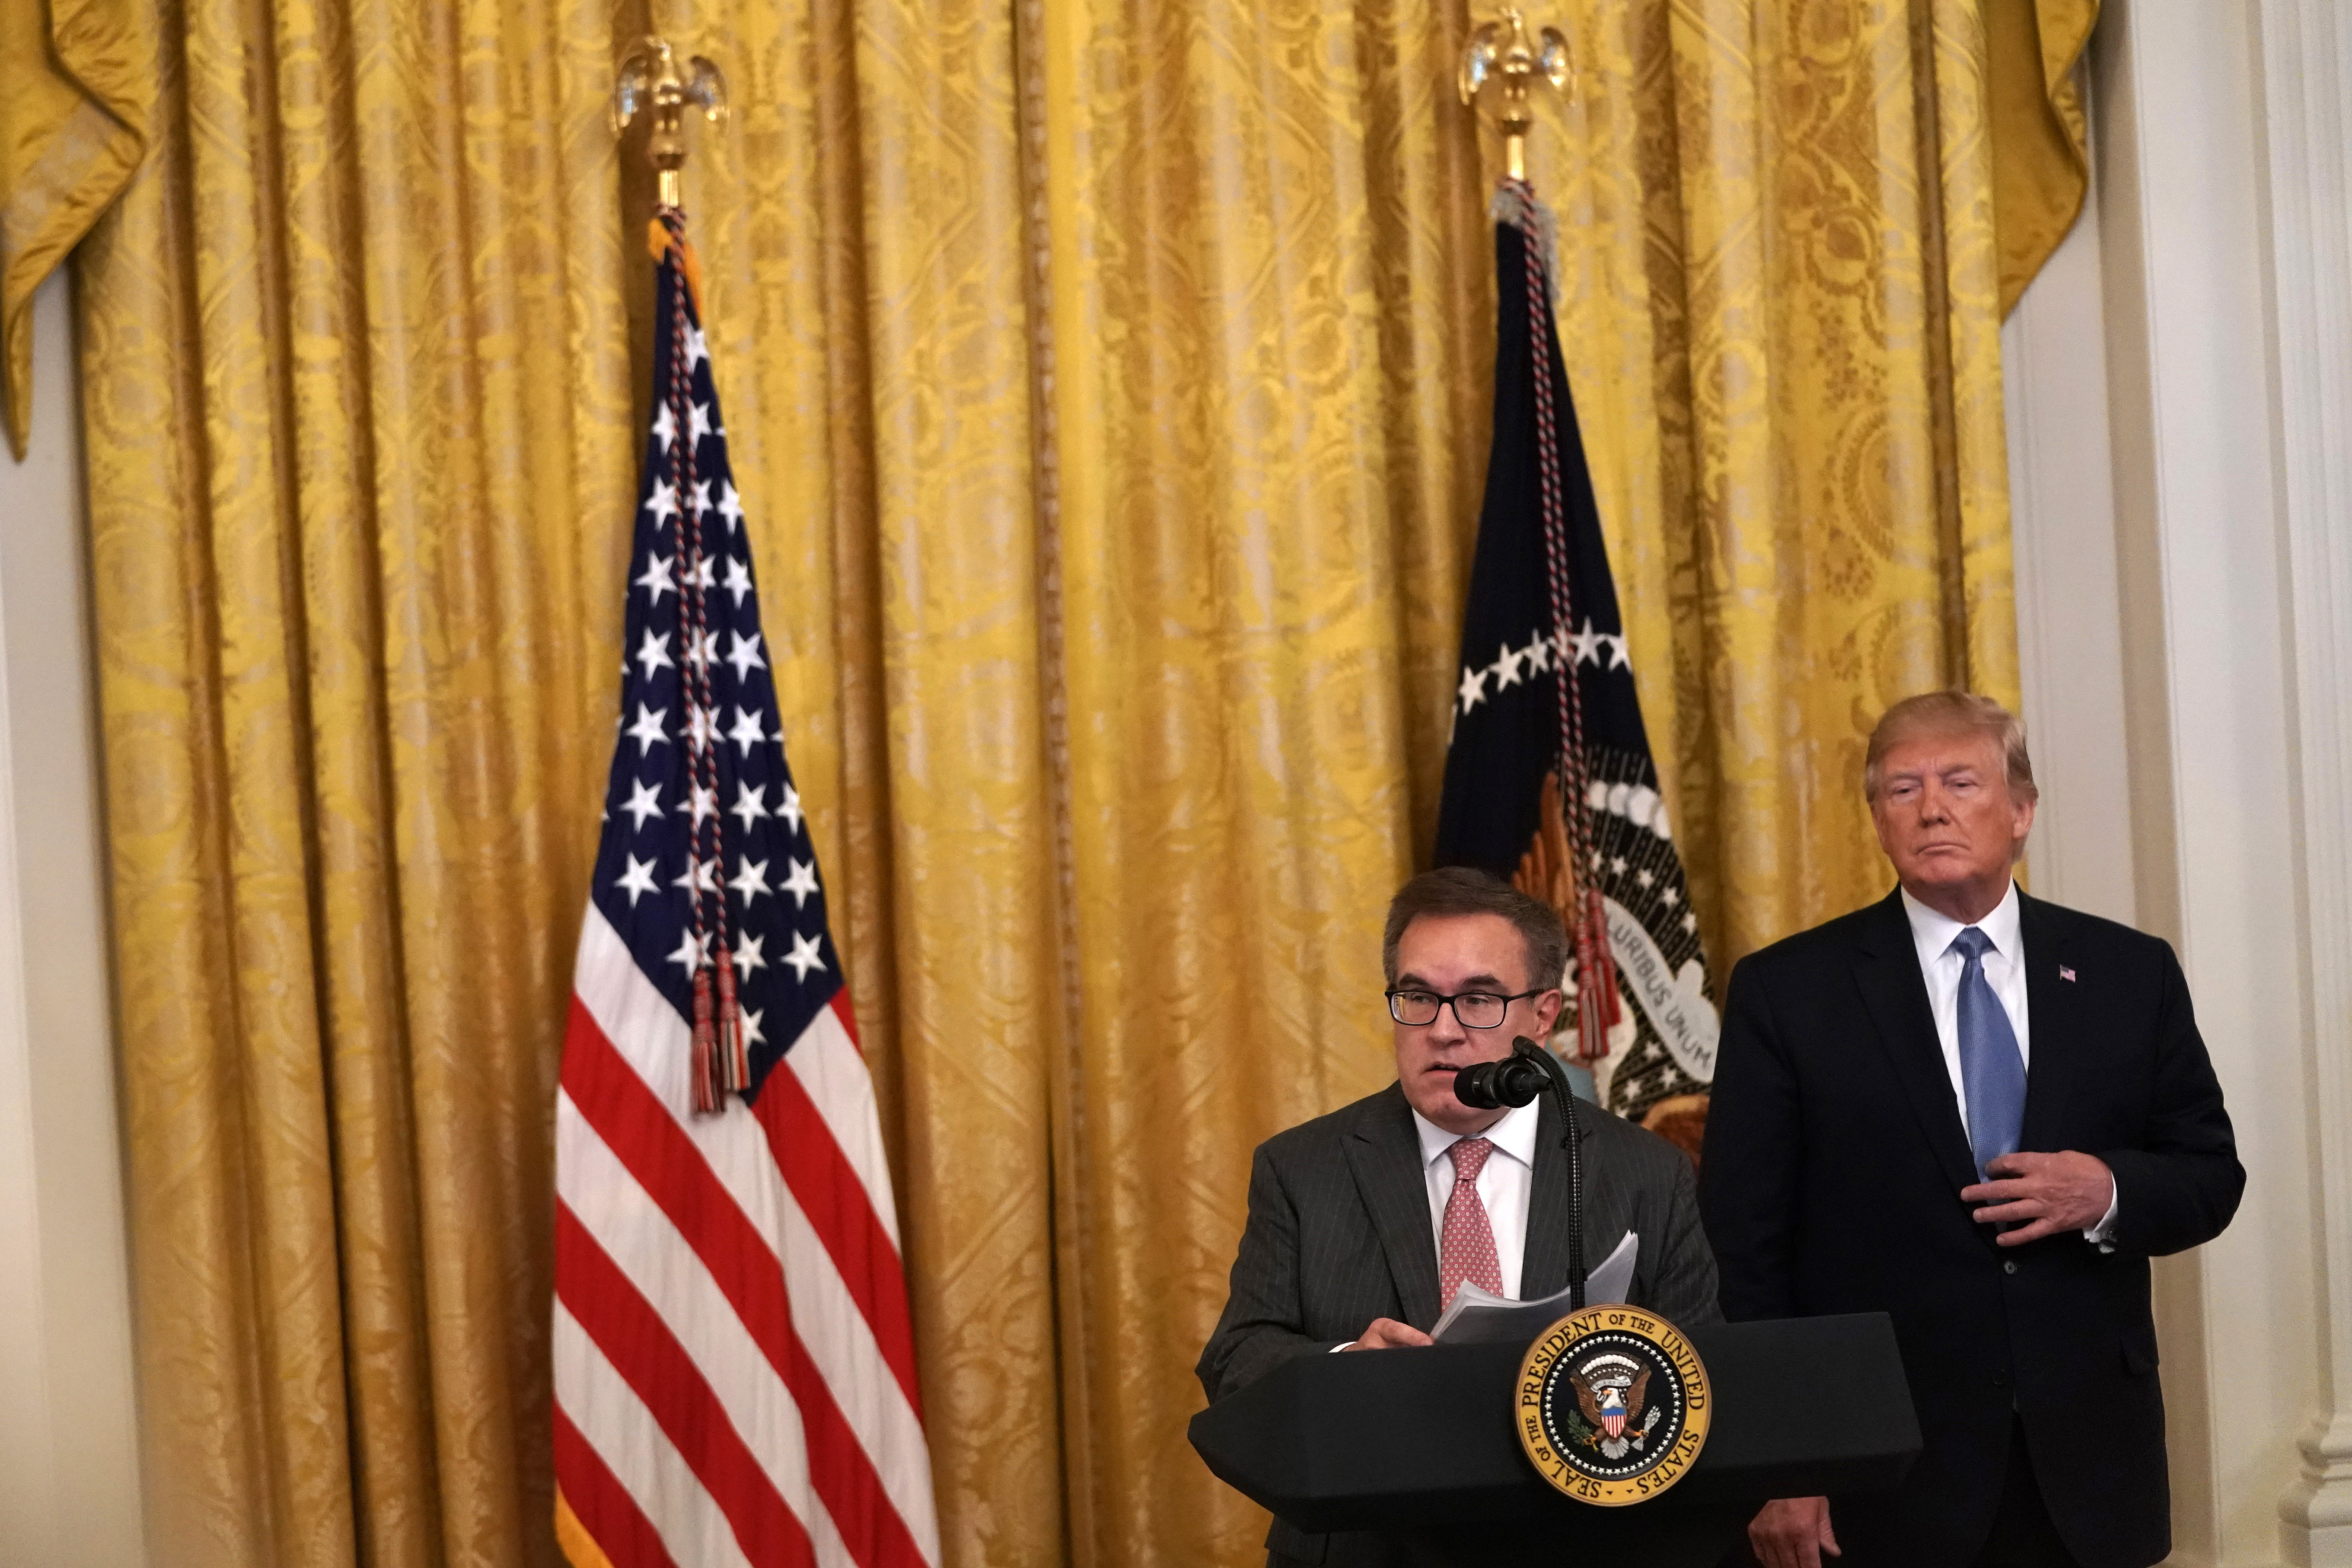 """WASHINGTON, DC - JULY 08: U.S. Environmental Protection Agency Administrator Andrew Wheeler (L) speaks as President Donald Trump (R) looks on during an East Room event on the environment July 7, 2019 at the White House in Washington, DC. President Trump delivered remarks on """"his Administration's environmental accomplishments of cleaner air and cleaner water, including helping communities across the Nation reduce air pollution and meet our air quality standards, as well as modernize outdated infrastructure and improve water quality while at the same time growing a strong economy for all Americans."""" (Photo by Alex Wong/Getty Images)"""